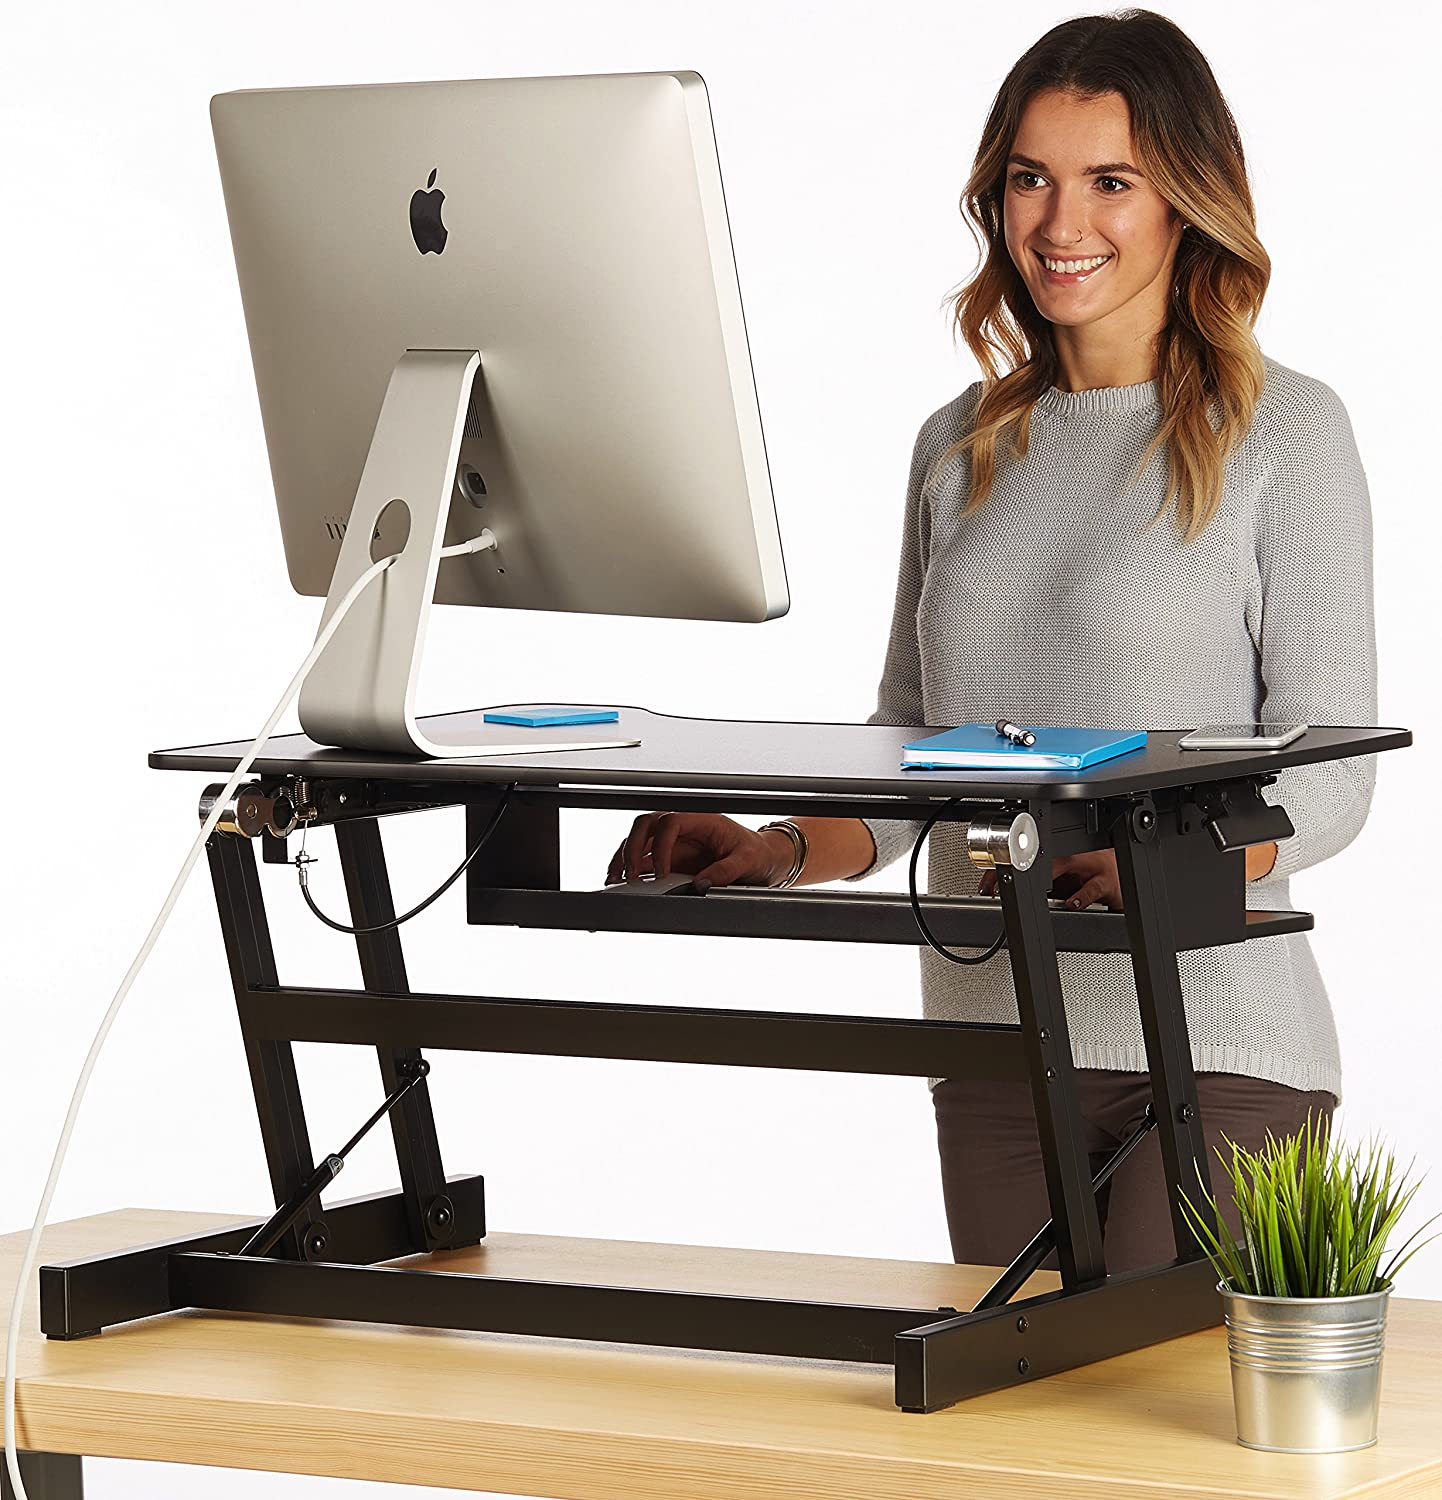 Amazoncom The House of Trade Standing Desk Height Adjustable